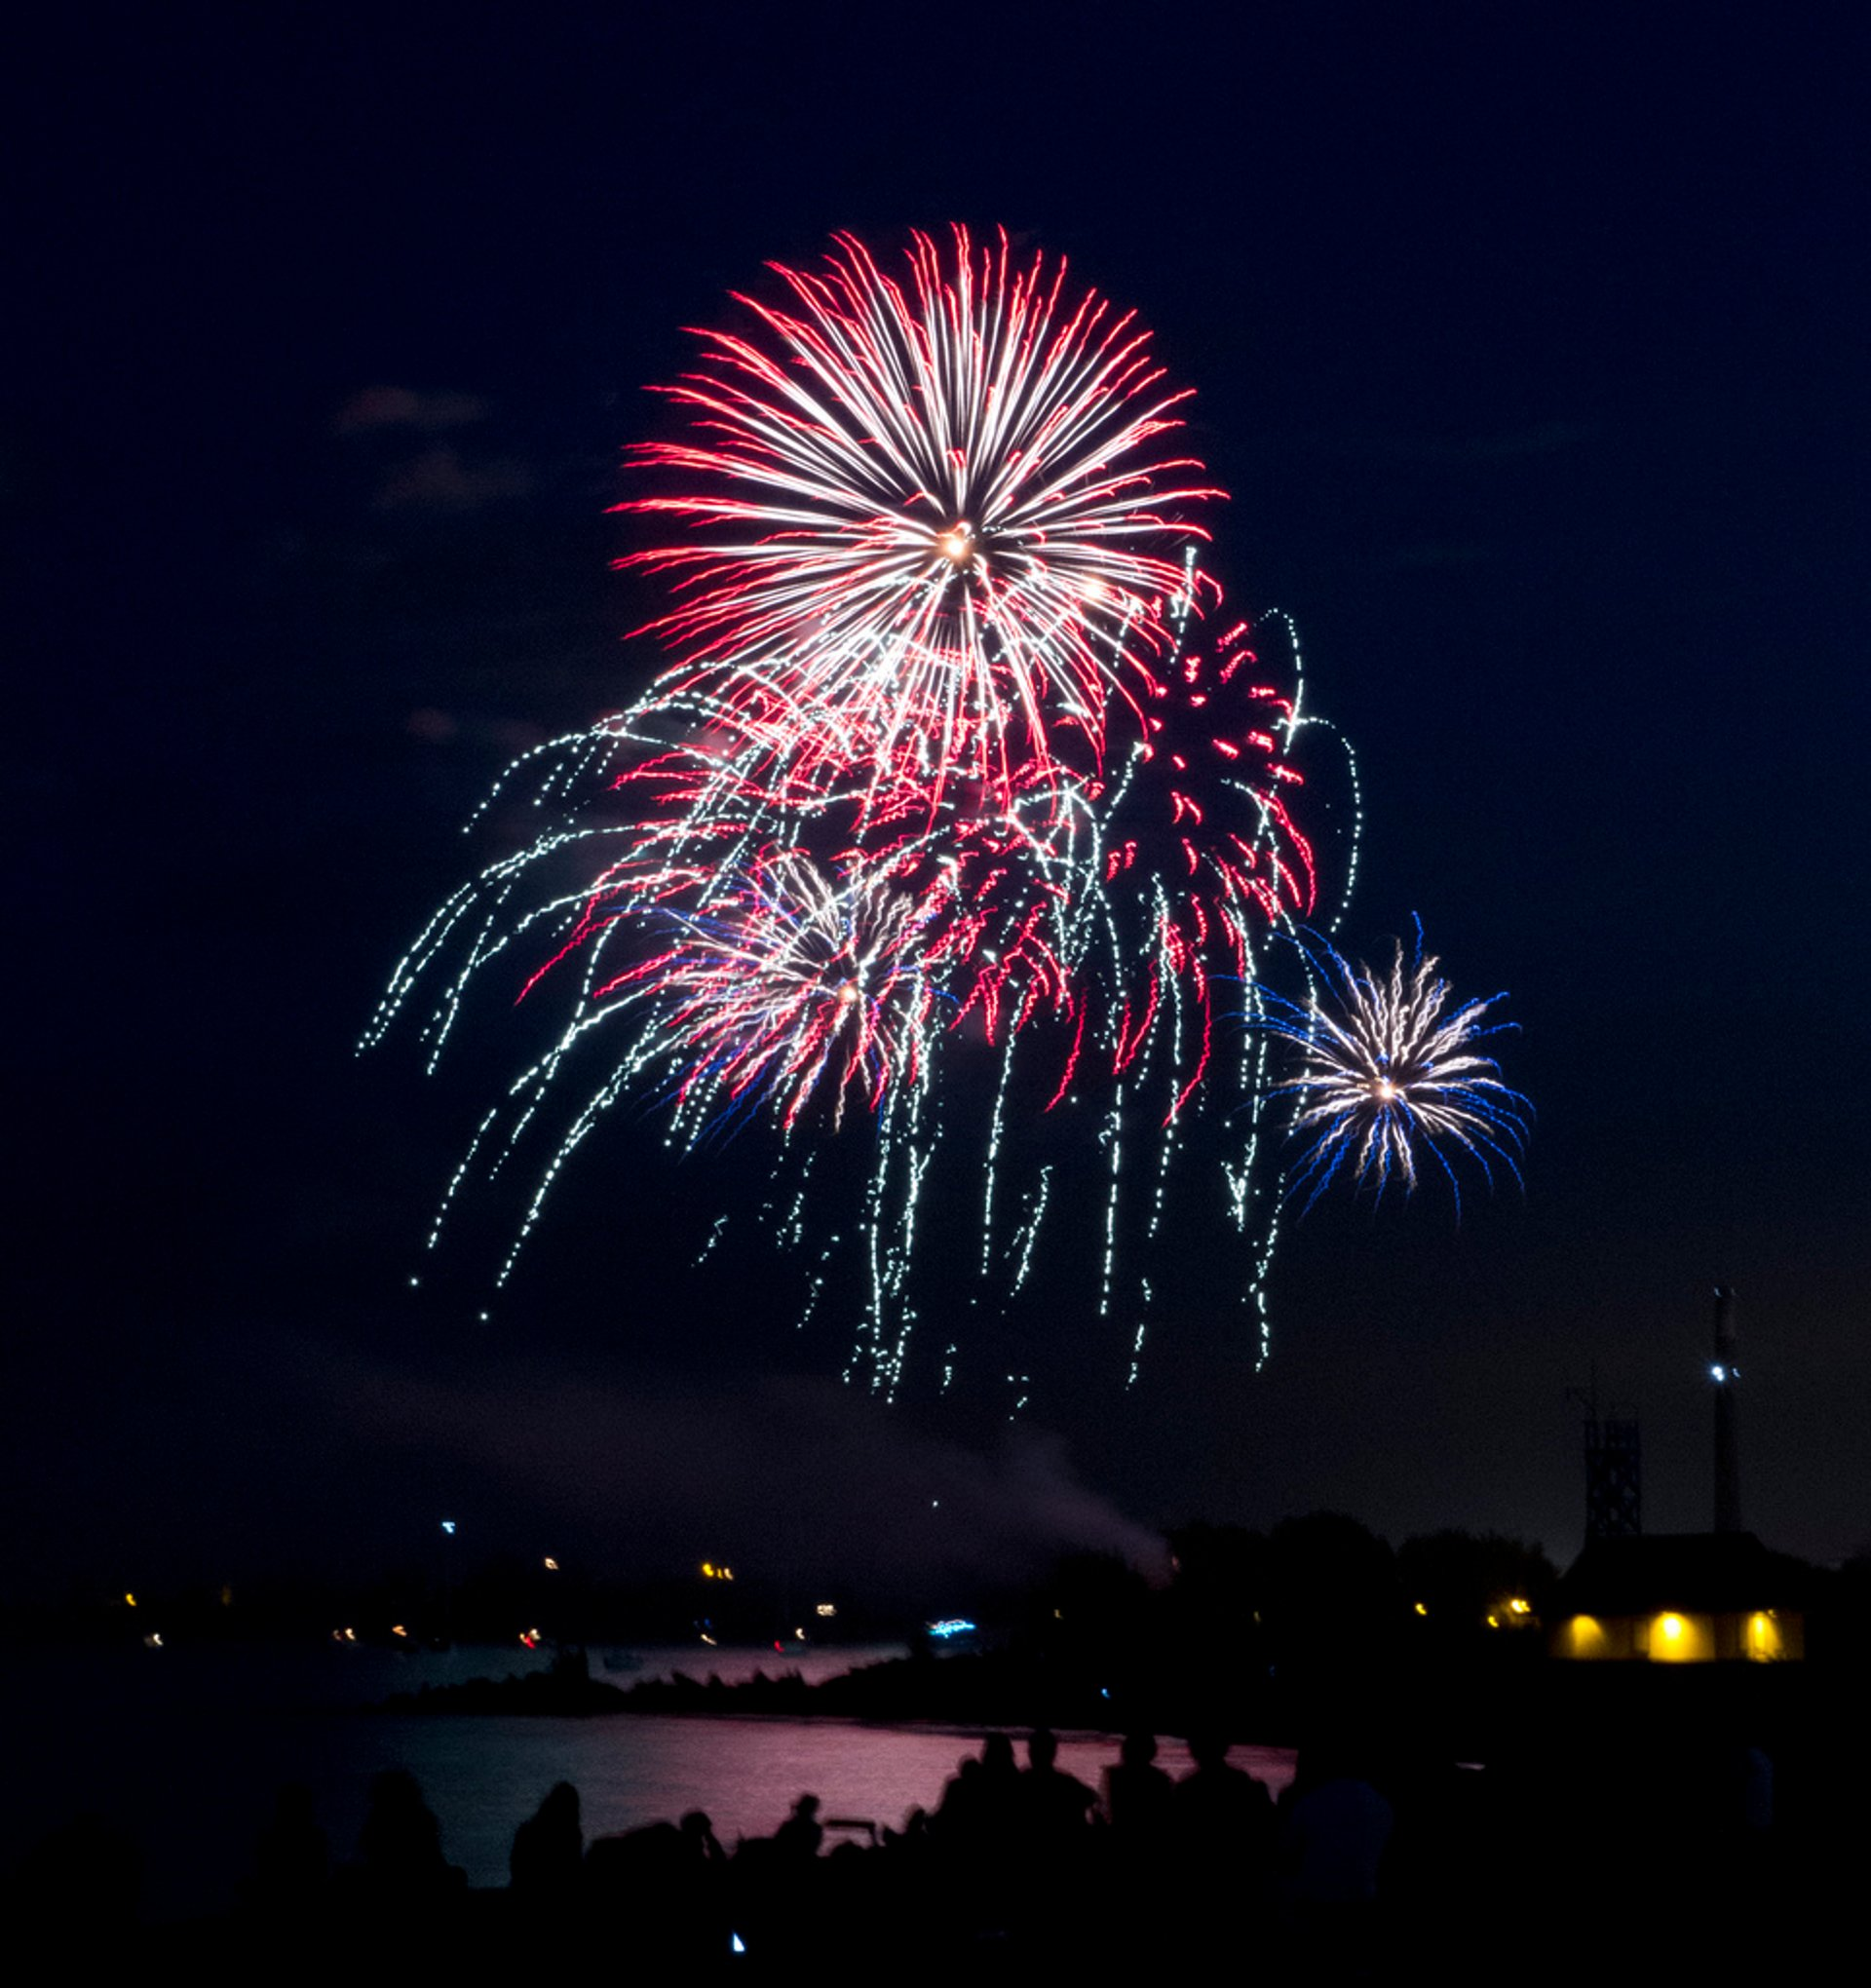 Victoria Day Fireworks in Toronto 2019 - Best Time